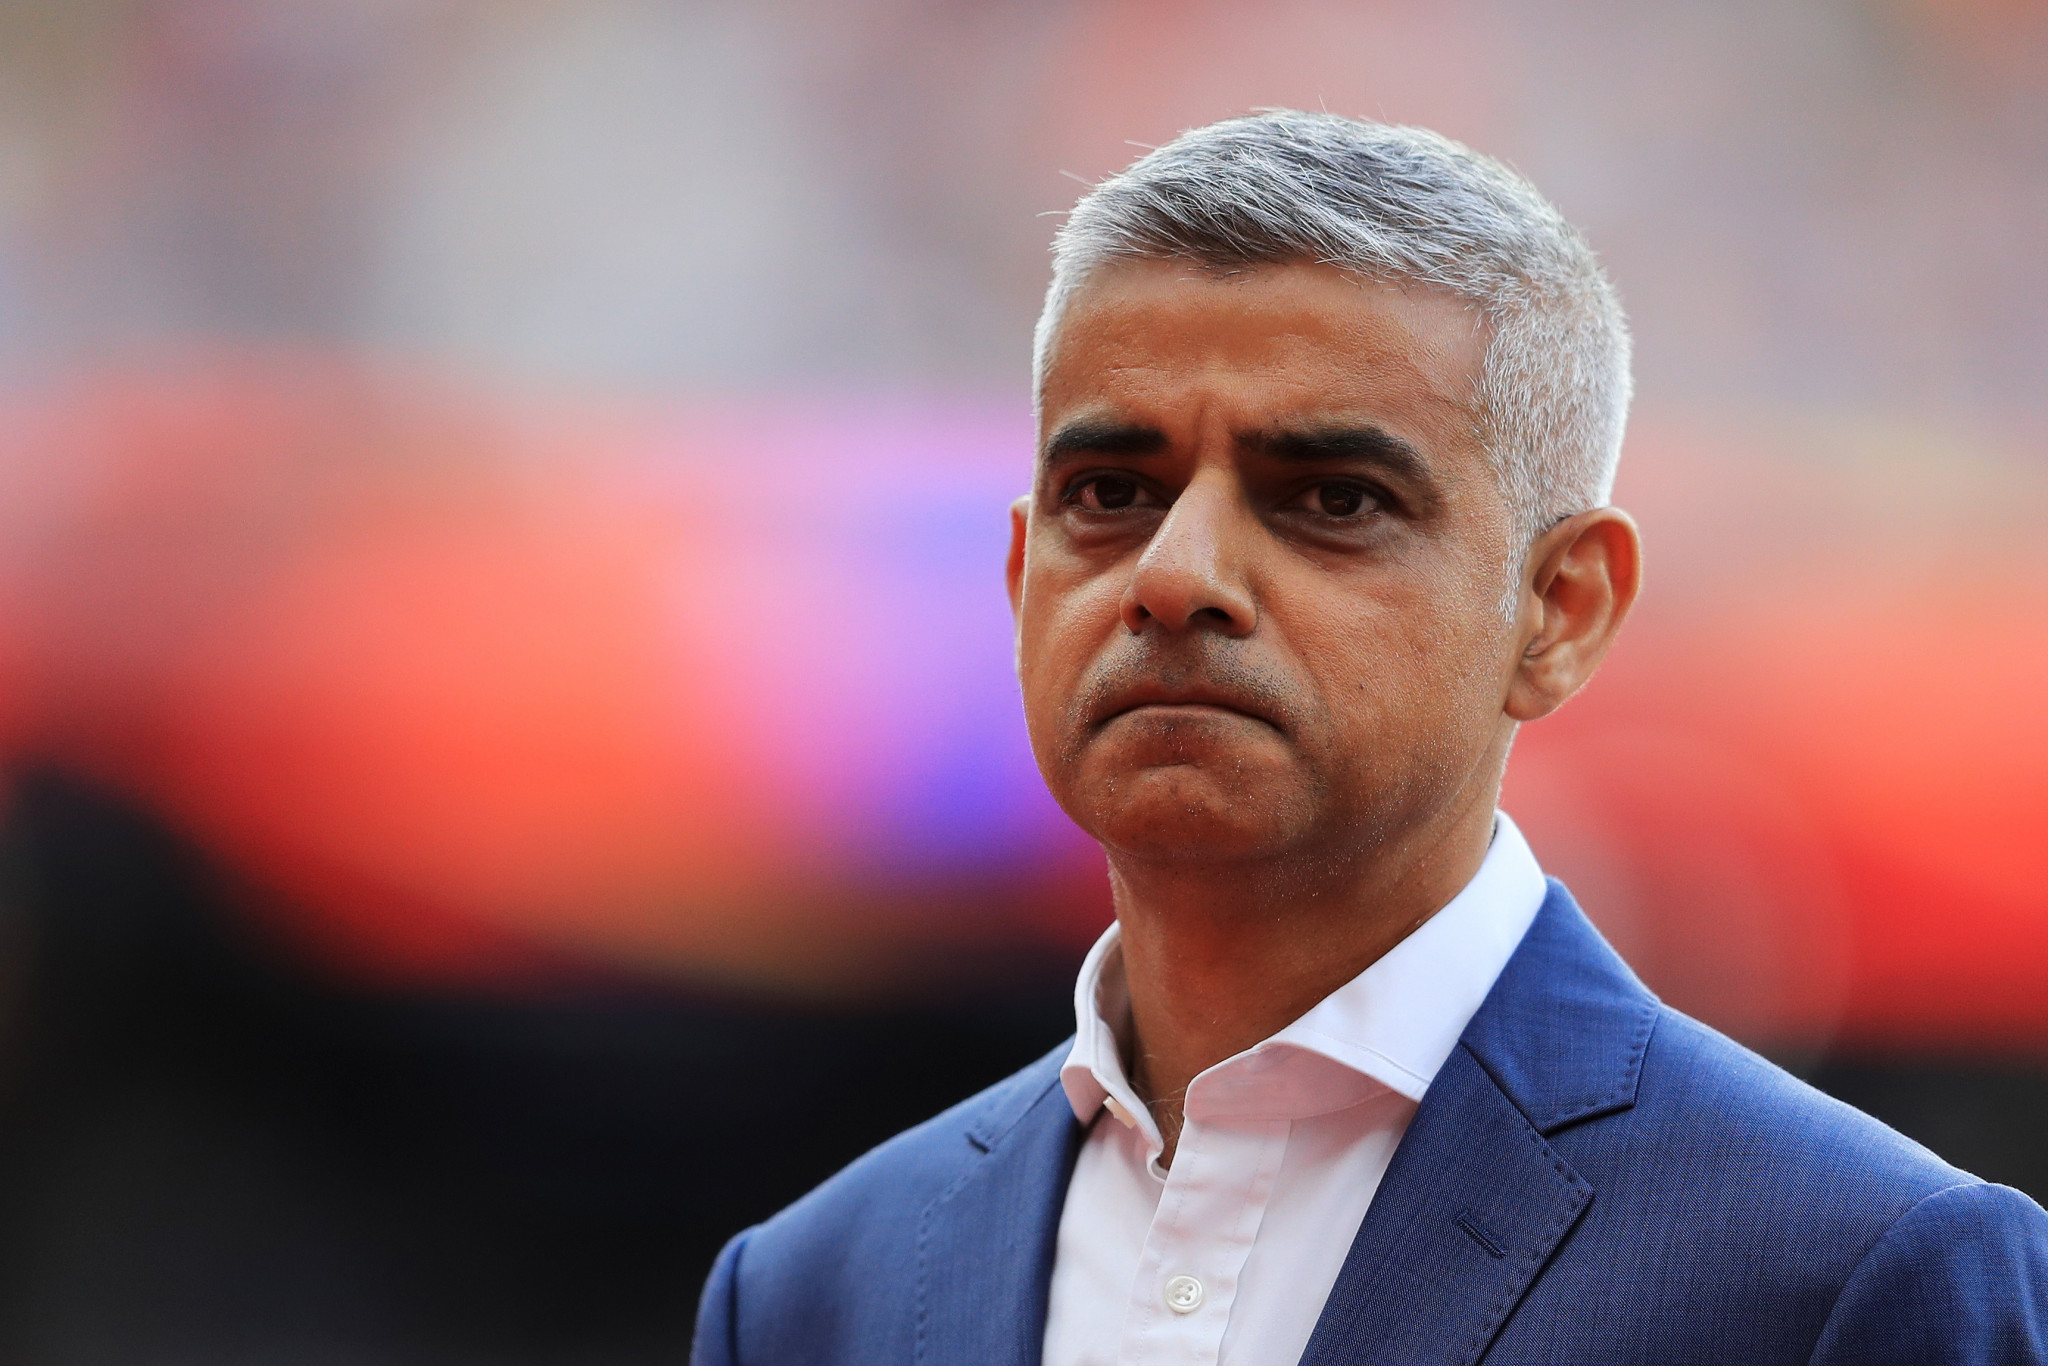 London Mayor Sadiq Khan is due to meet with West Ham United officials ©Getty Images